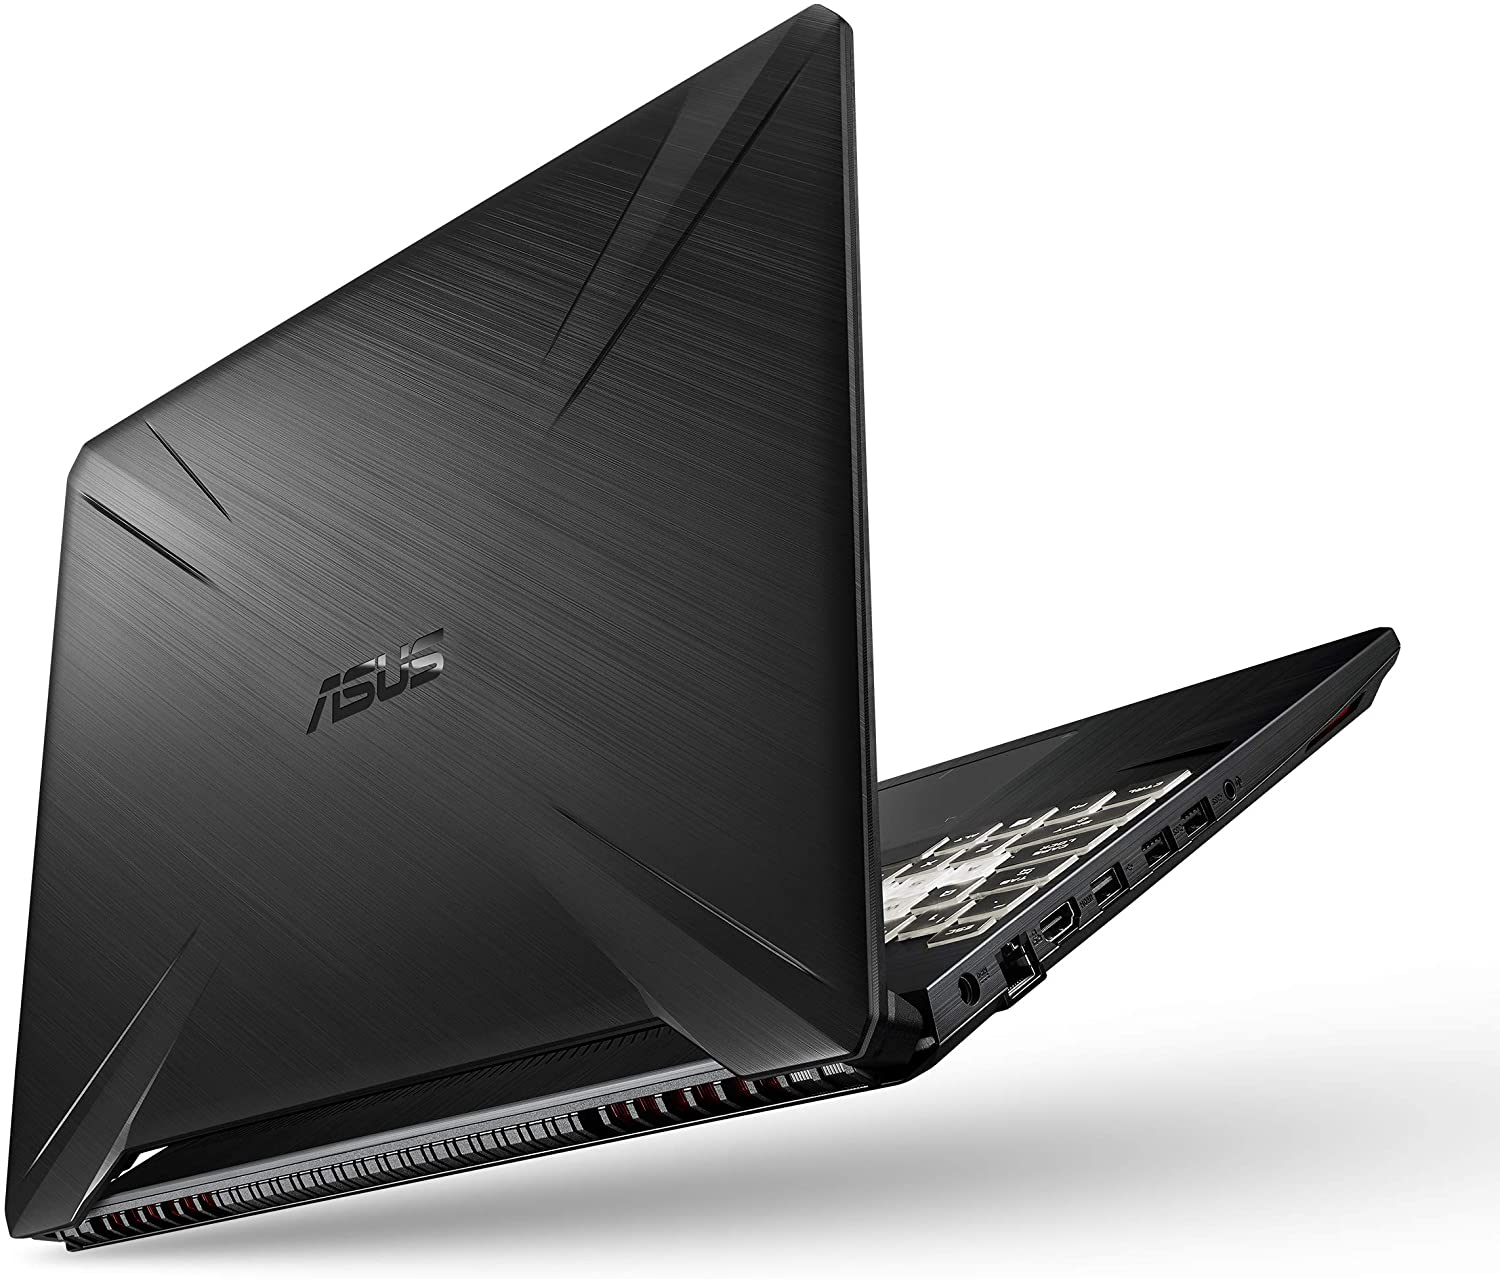 "ASUS TUF Gaming Laptop - 15.6"" 144Hz FHD Intel Core i7-9750H Processor, 8GB RAM, 512GB SSD, 4GB NVIDIA GeForce GTX 1650 - Windows 10"